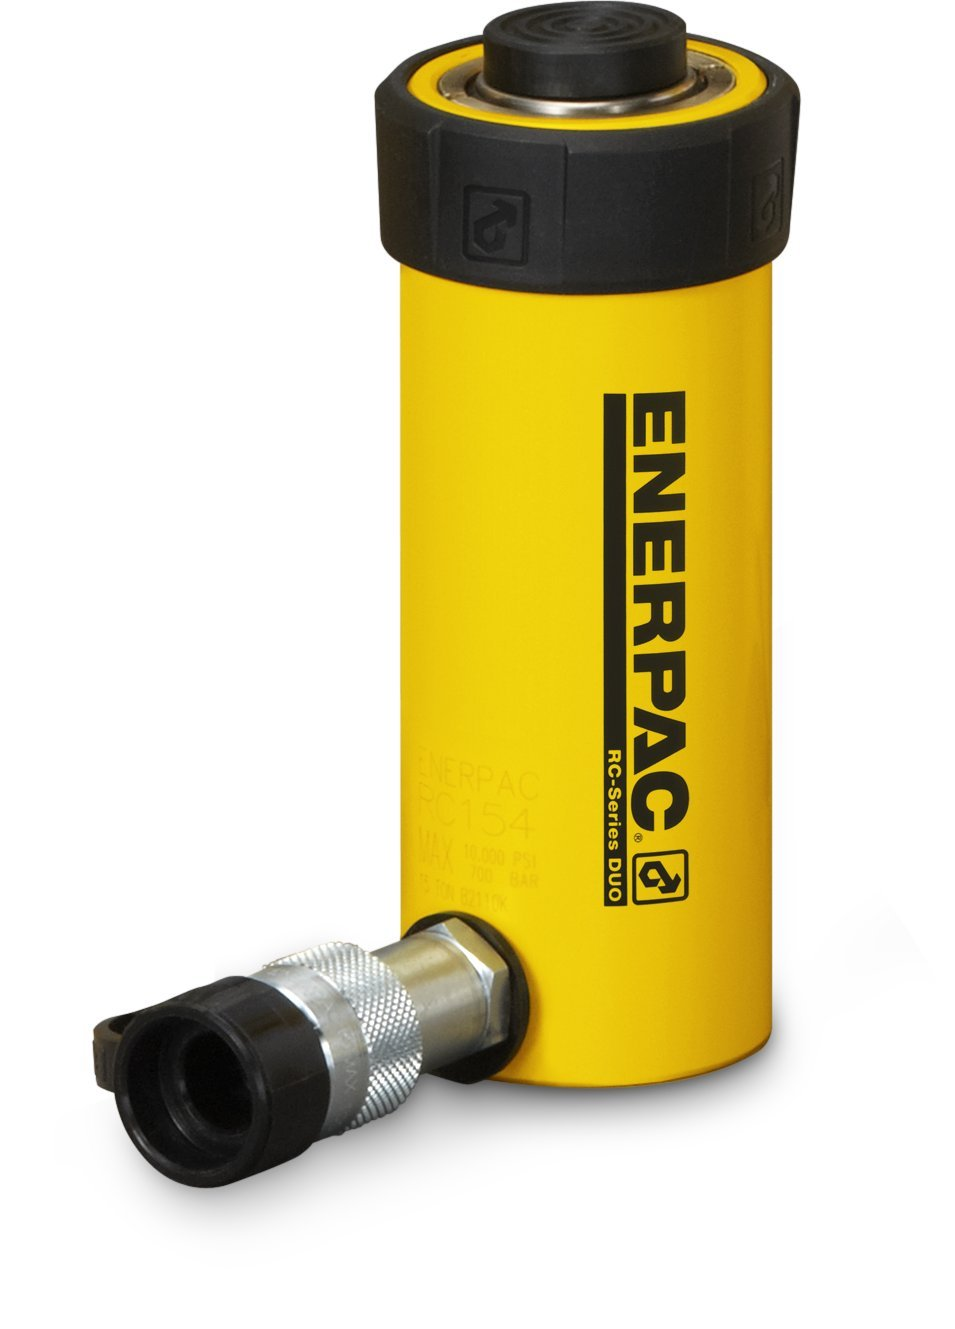 Enerpac RC-102 Single-Acting Alloy Steel Hydraulic Cylinder with 10 Ton Capacity, Single Port, 2.13'' Stroke